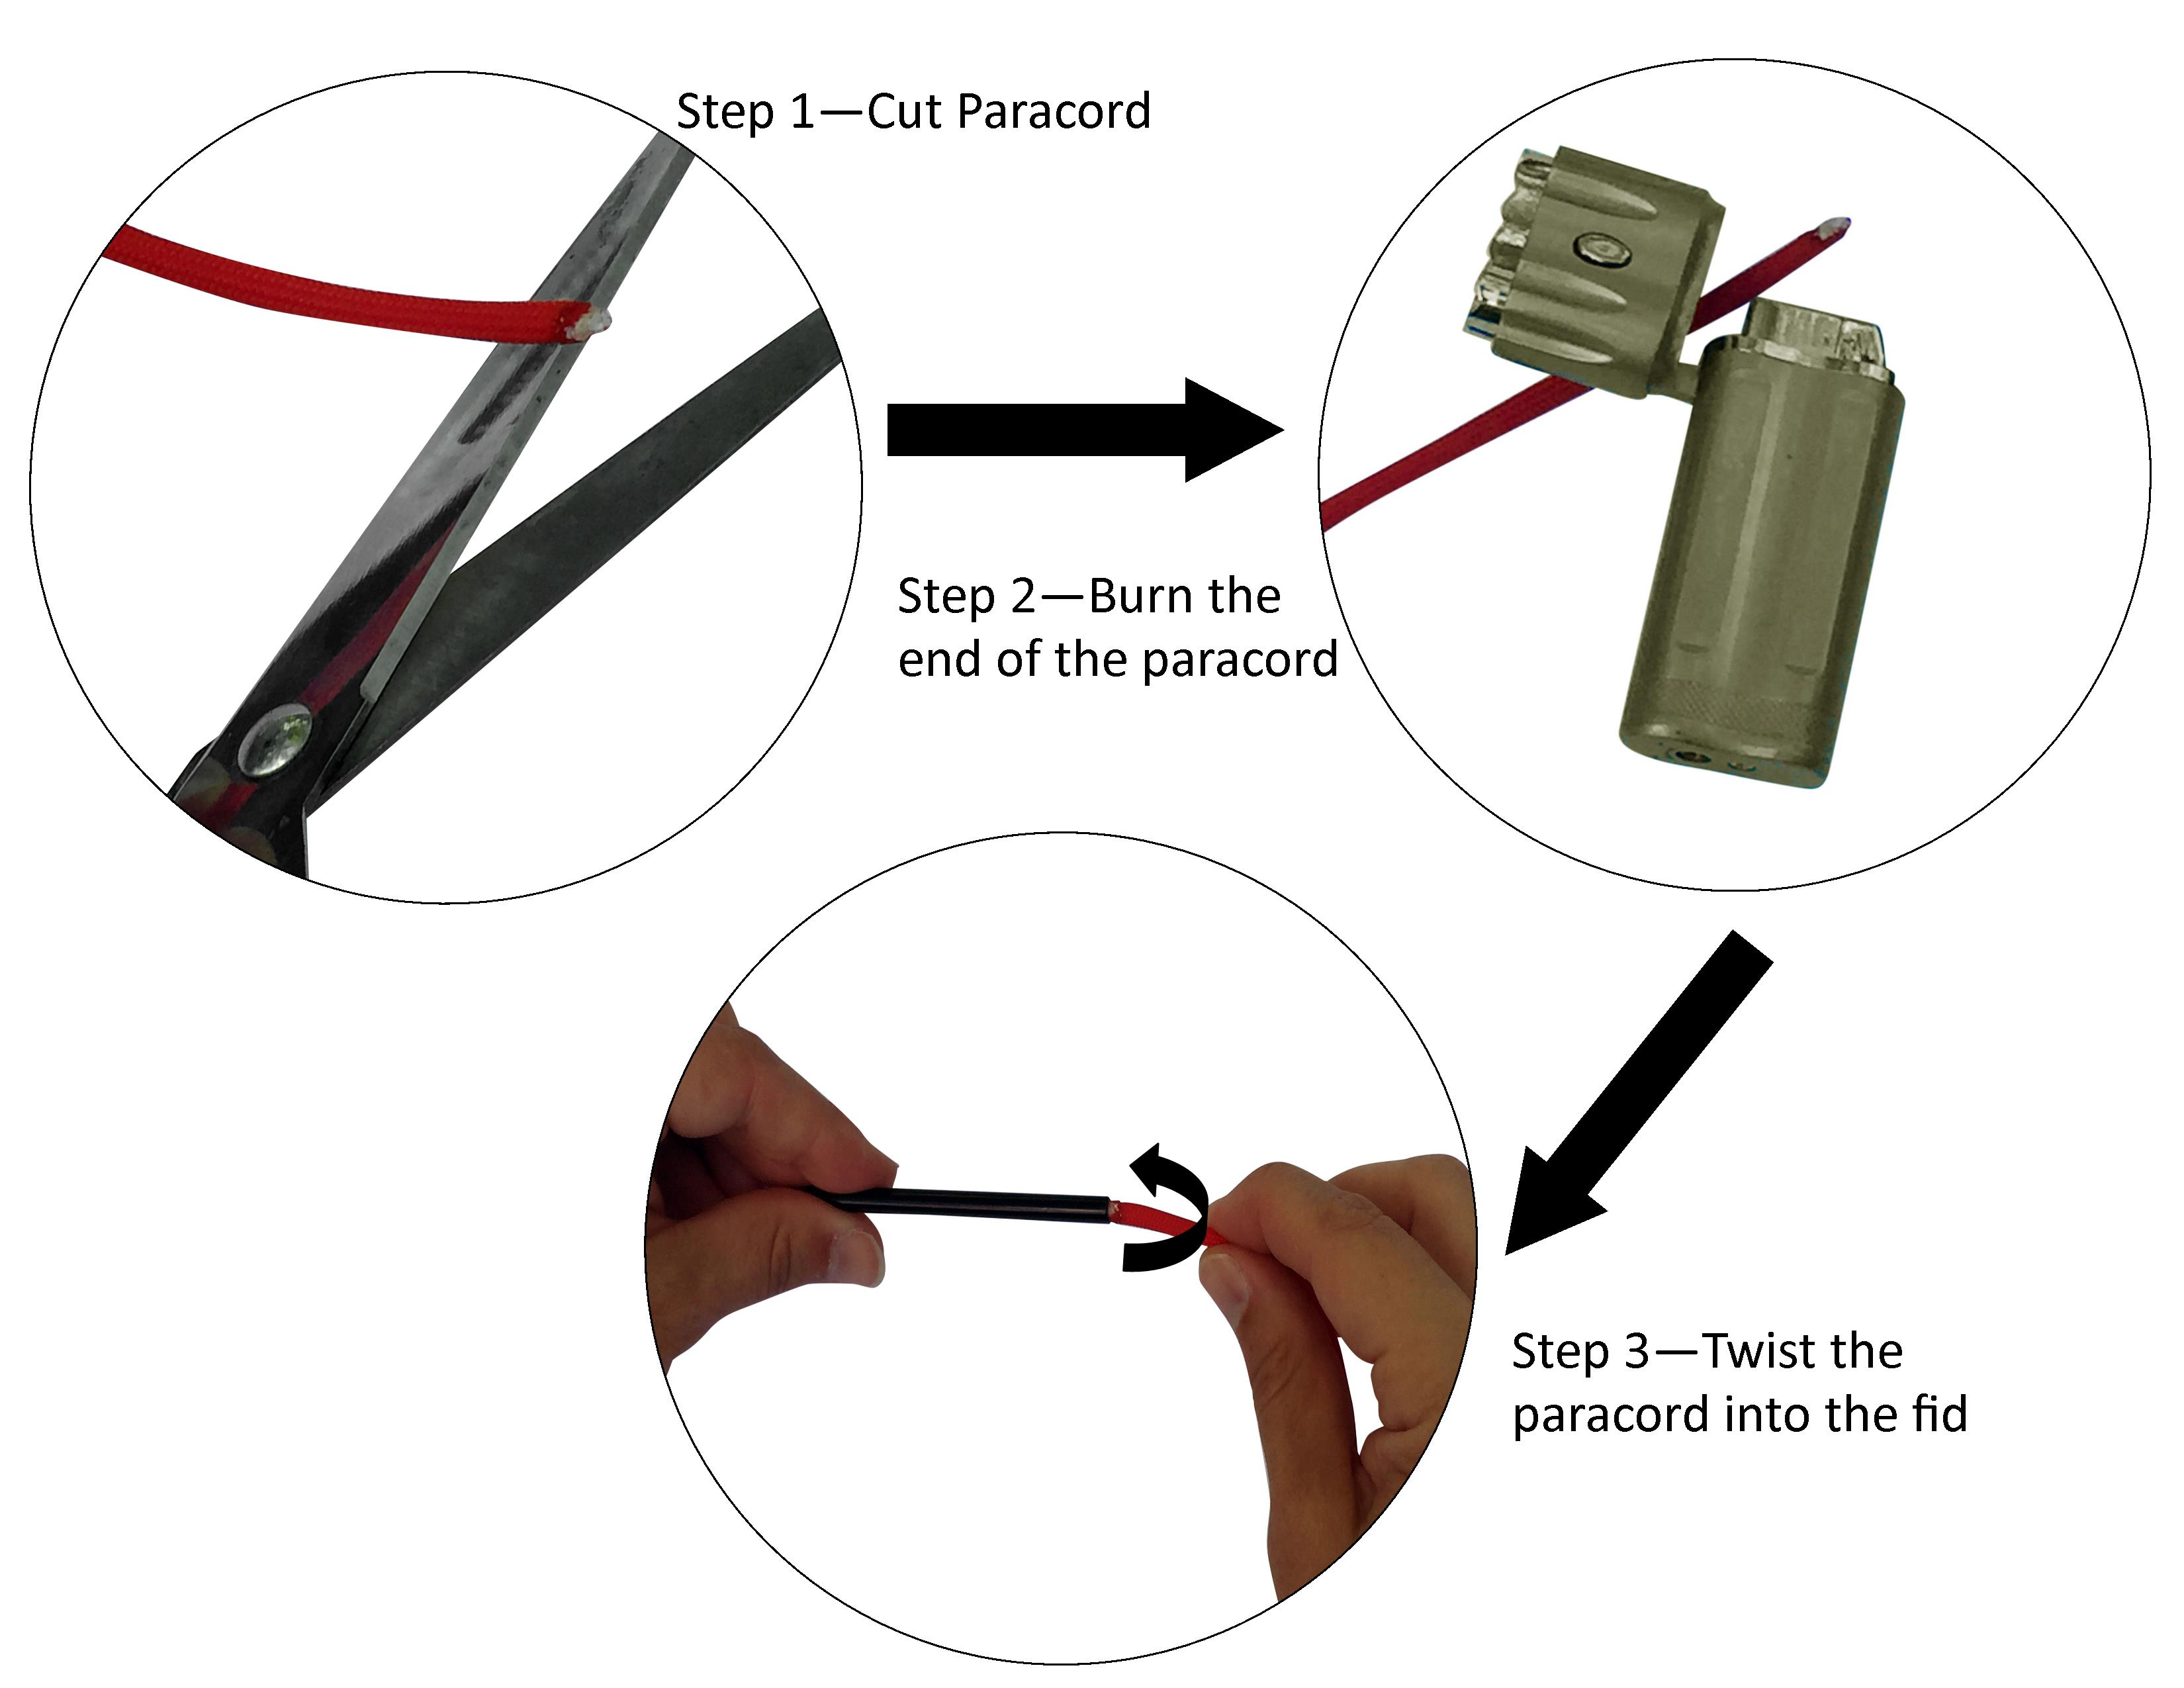 Come with Plastic Storage Case These Micro Hooks are The Perfect Survival EDC for Using Paracord to Hold Your Gear 10 Metal Clips Wild Wolf Pack Mini Spring Buckle Carabiners